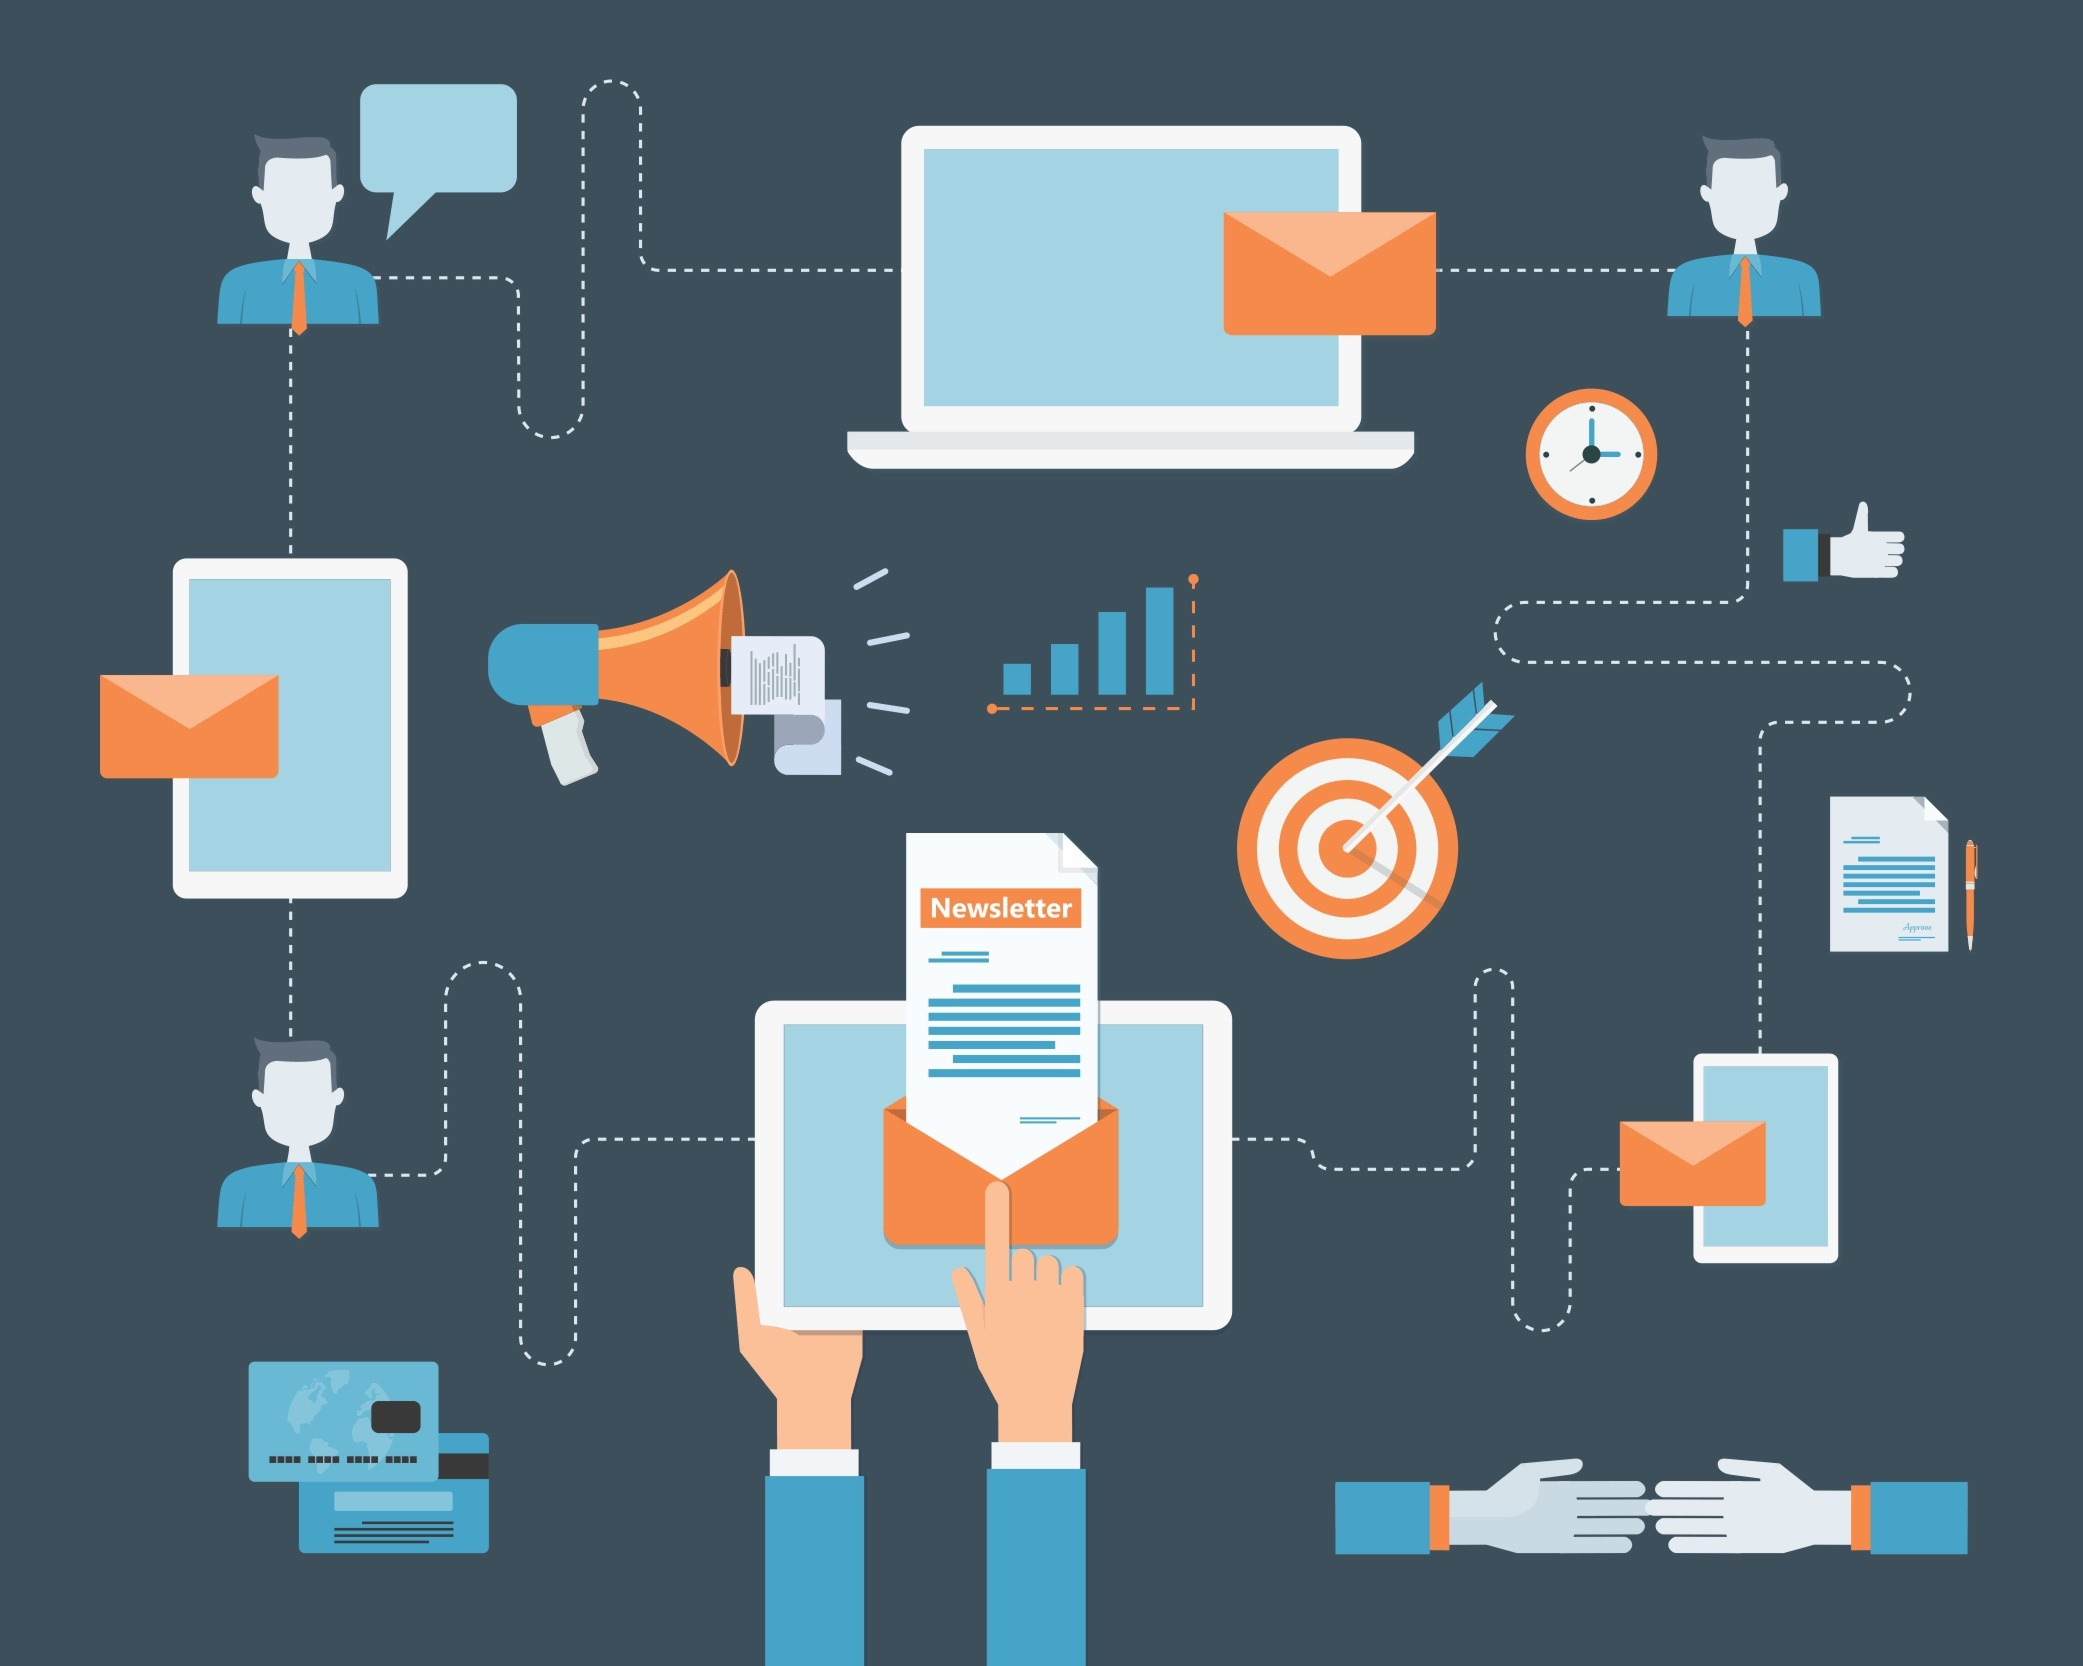 Why Marketing Automation Should Be Part of Your Strategy